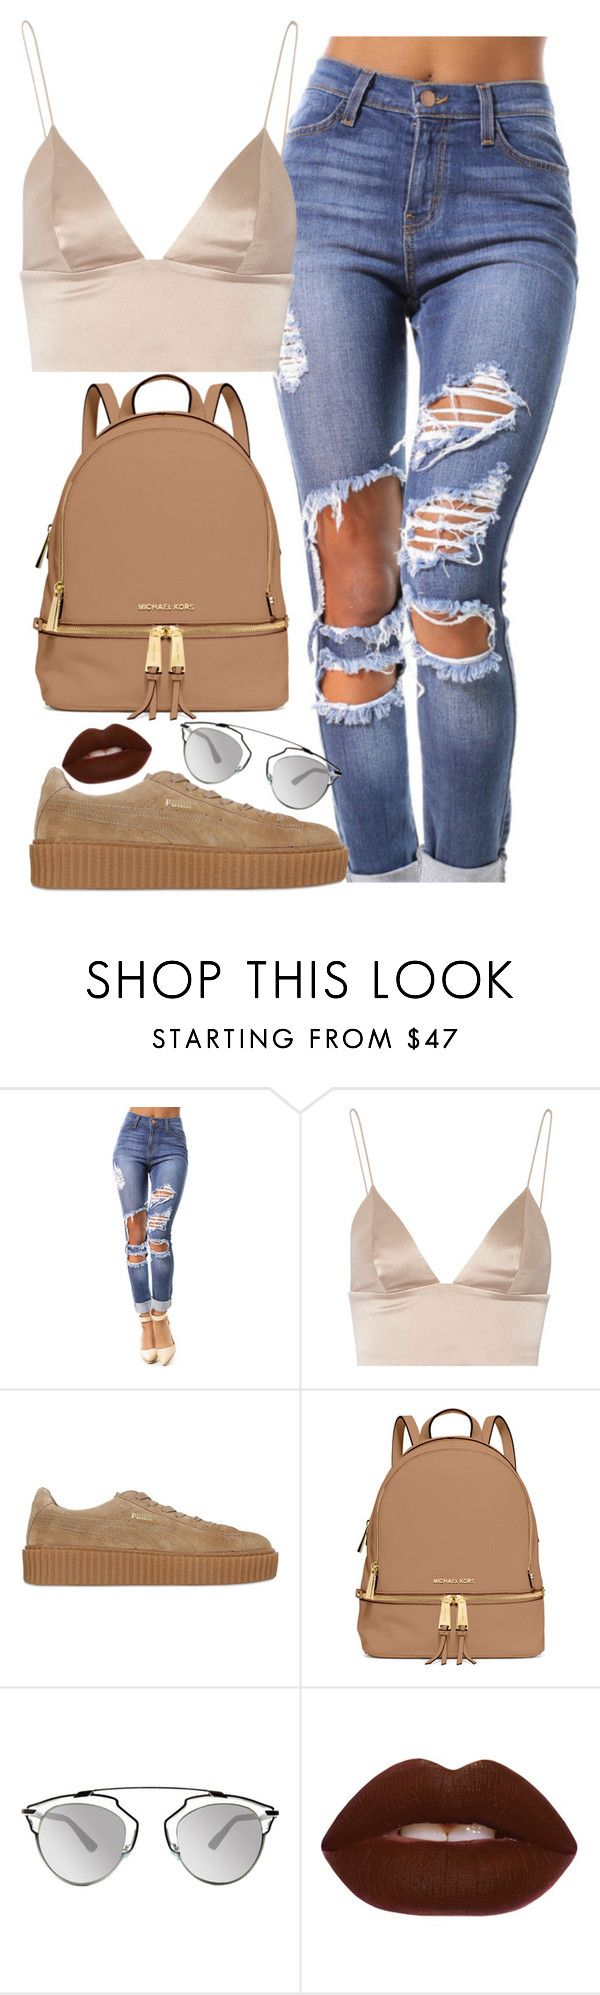 """Pia Mia Perez"" by alicehite ❤ liked on Polyvore featuring T By Alexander Wang, Puma, MICHAEL Michael Kors, Christian Dior, Lime Crime and piamiaperez"